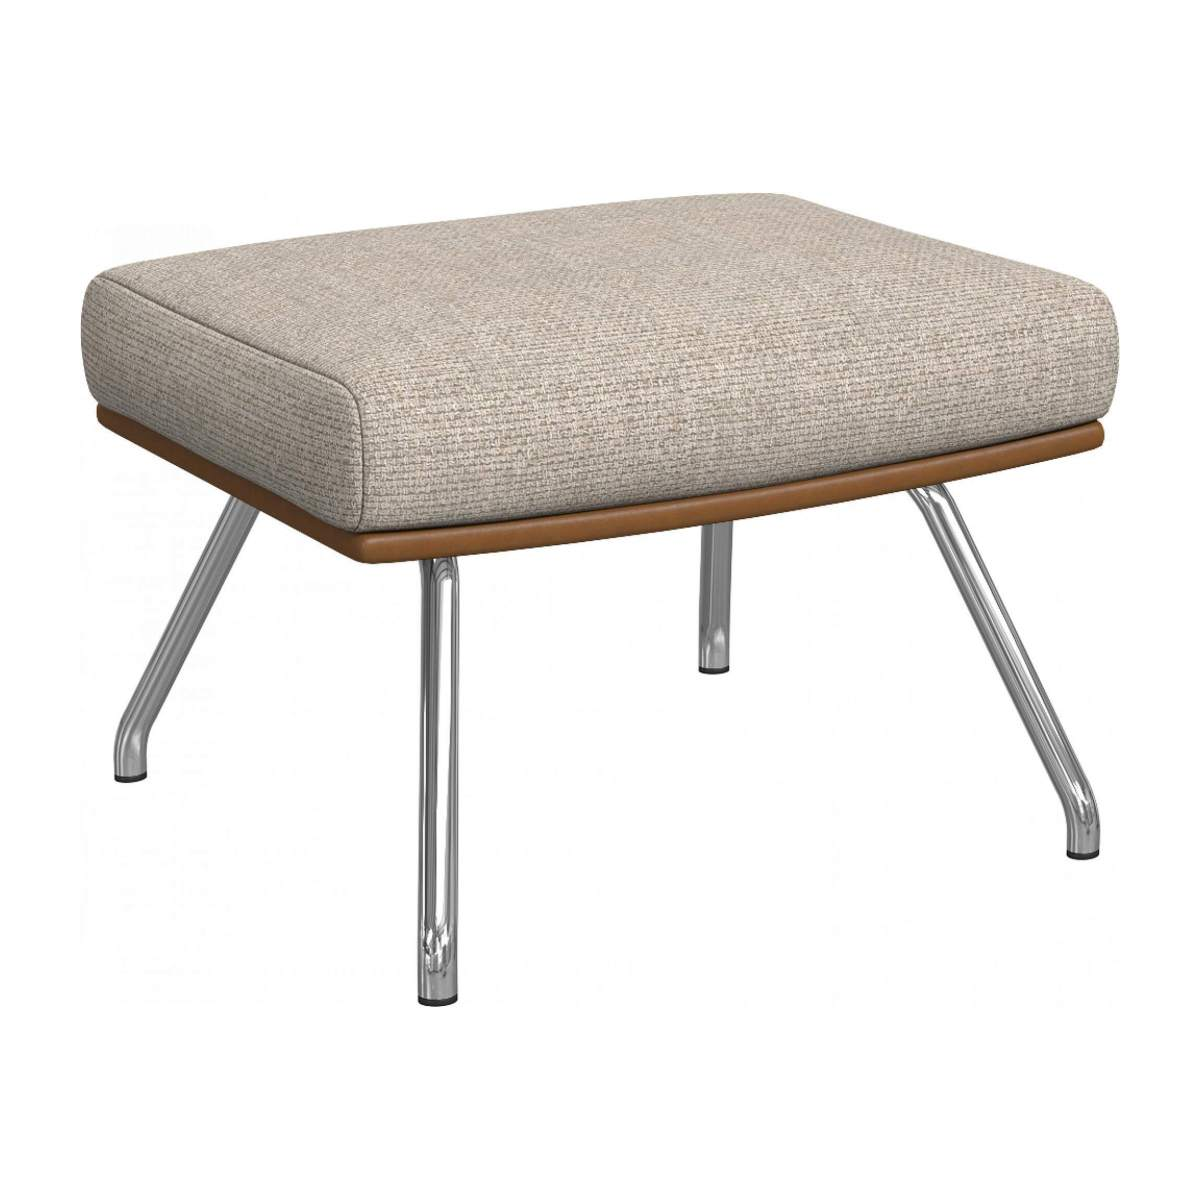 Footstool in Ancio fabric, nature et cuir marron with chromed metal legs n°2